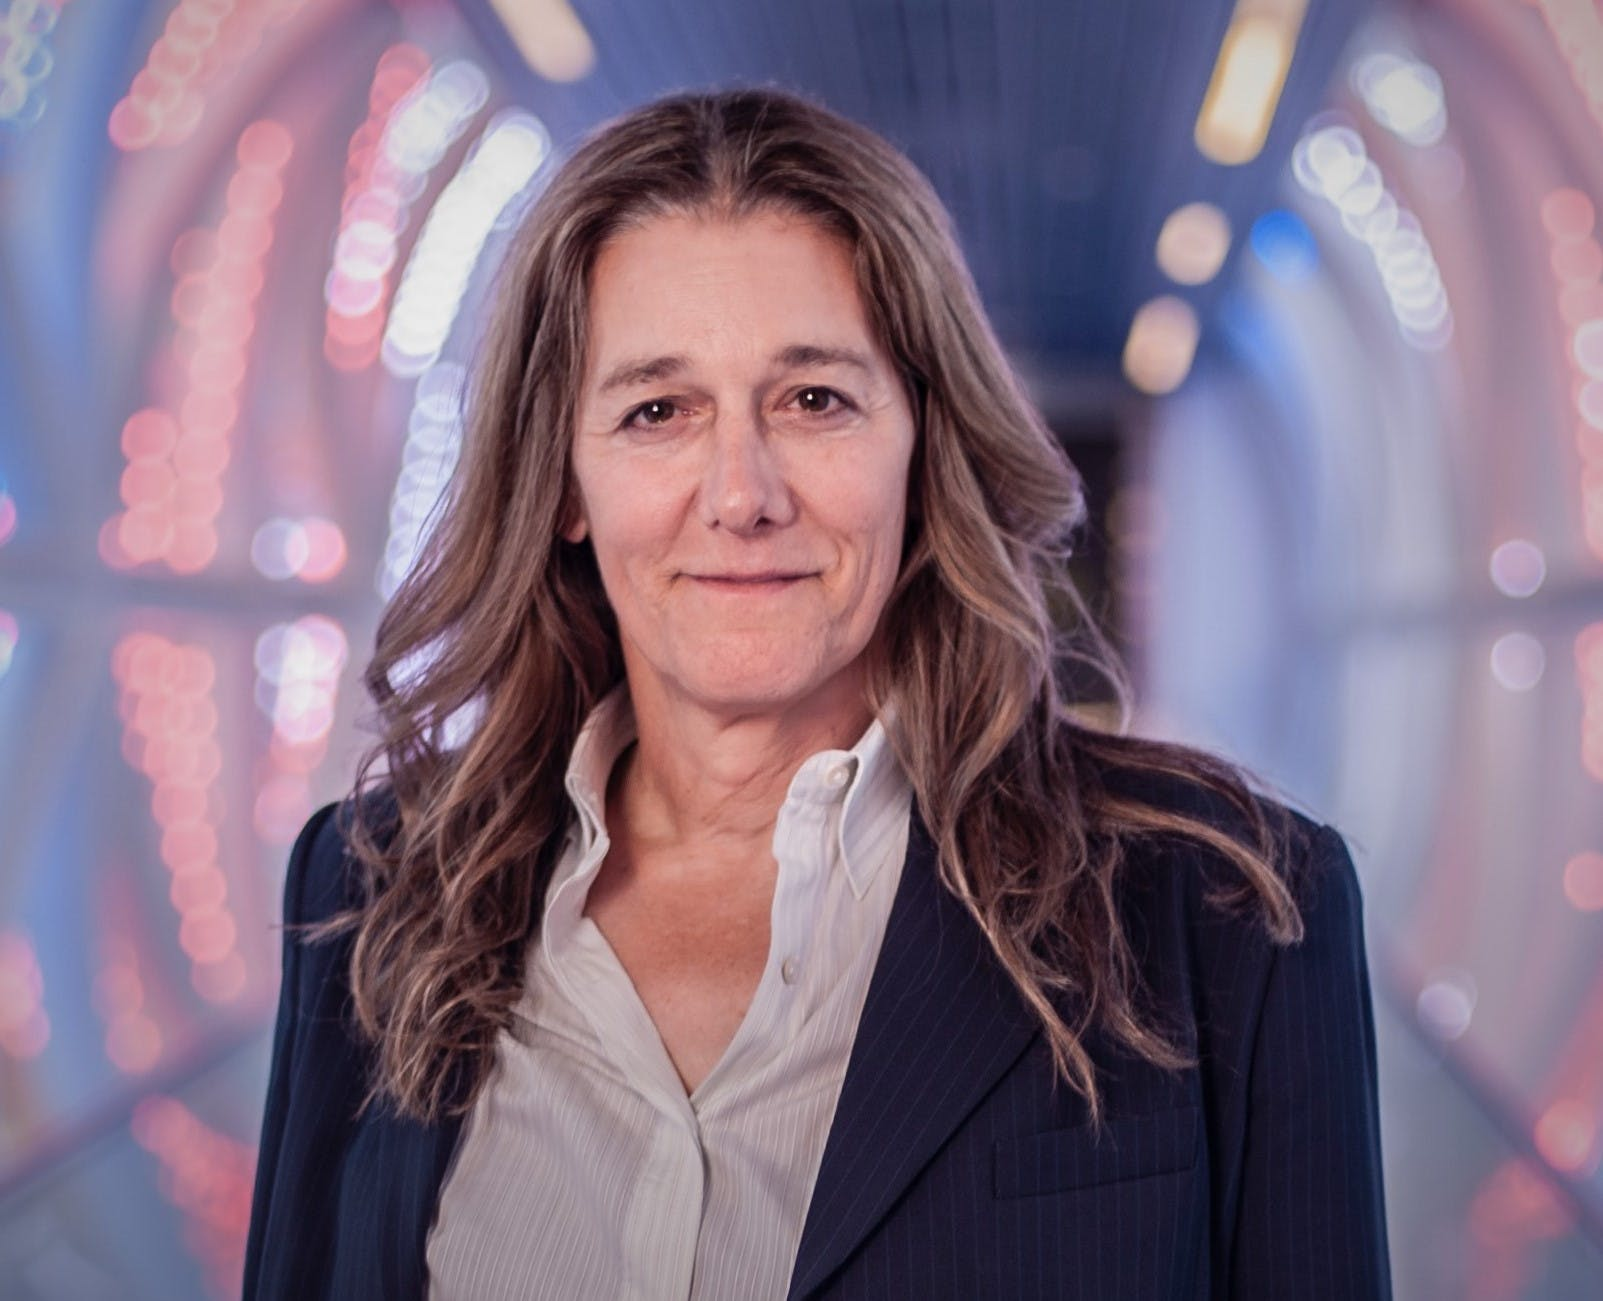 A headshot of Martine Rothblatt, a woman with shoulder-length brown hair, wearing a white shirt and a navy jacket.